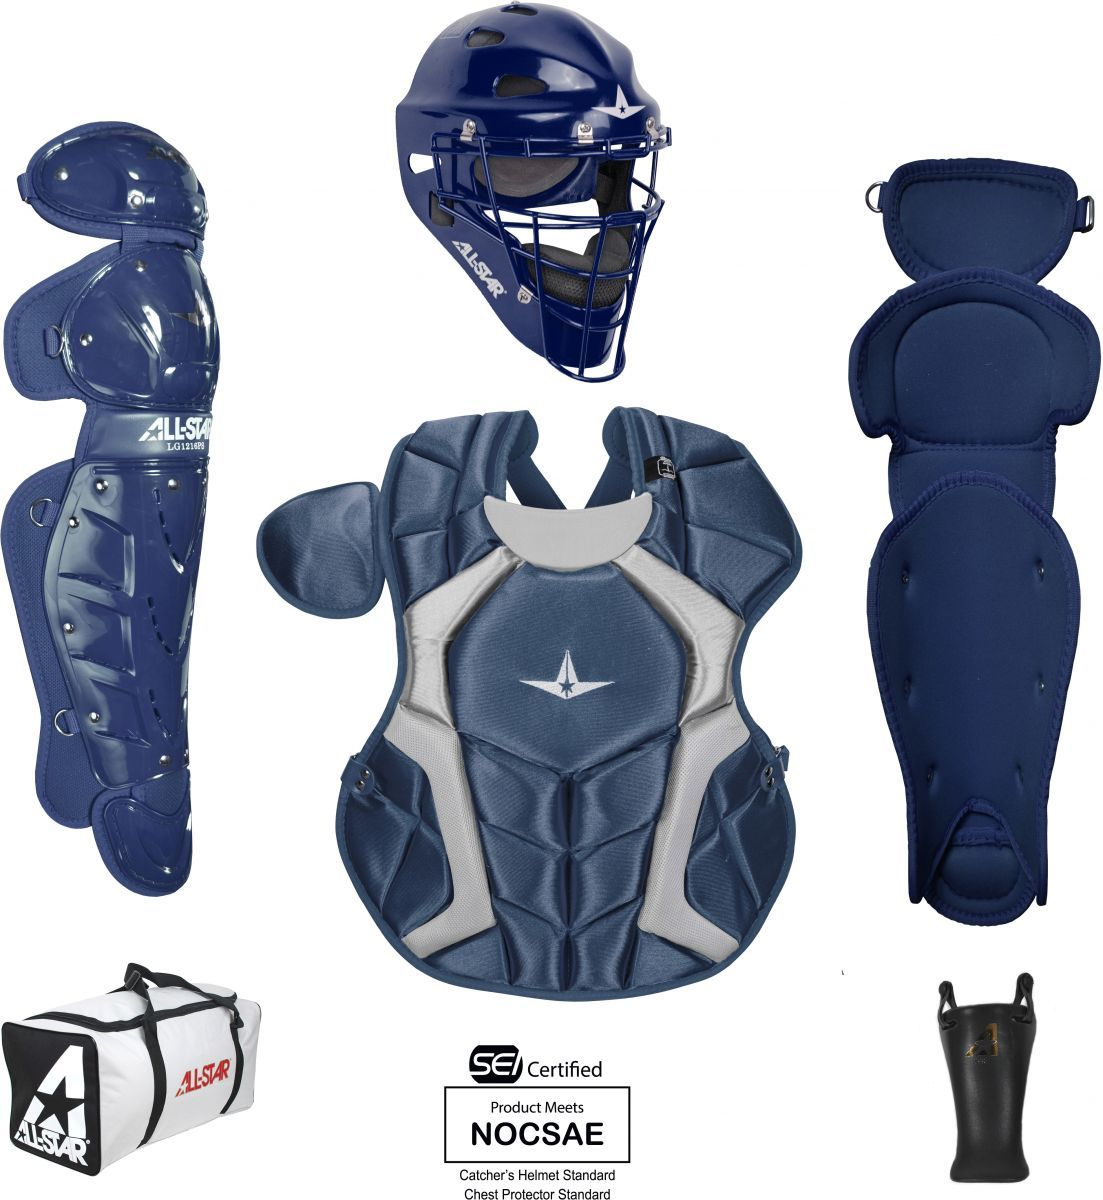 All Star Youth Player's Series Catching Kit (Ages 9-12)